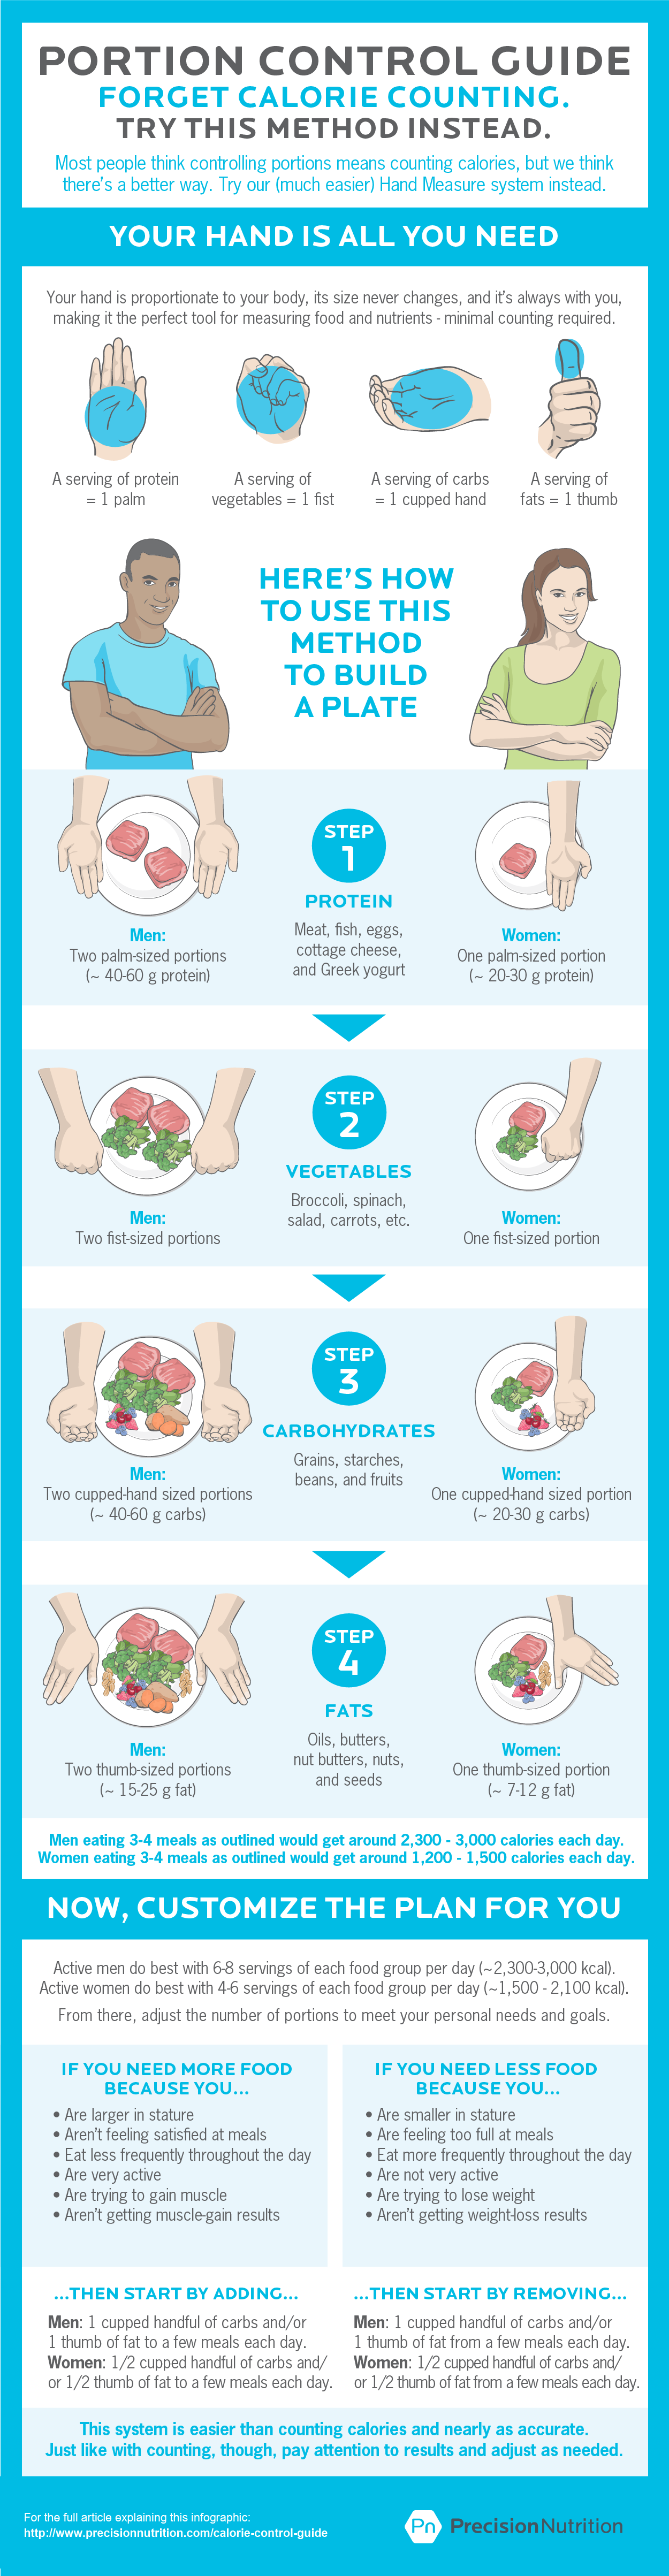 The Best Calorie Control Guide Infographic Estimating Portion Size And Food Intake Just Got A Whole Lo Calorie Control Portion Control Guide Portion Control